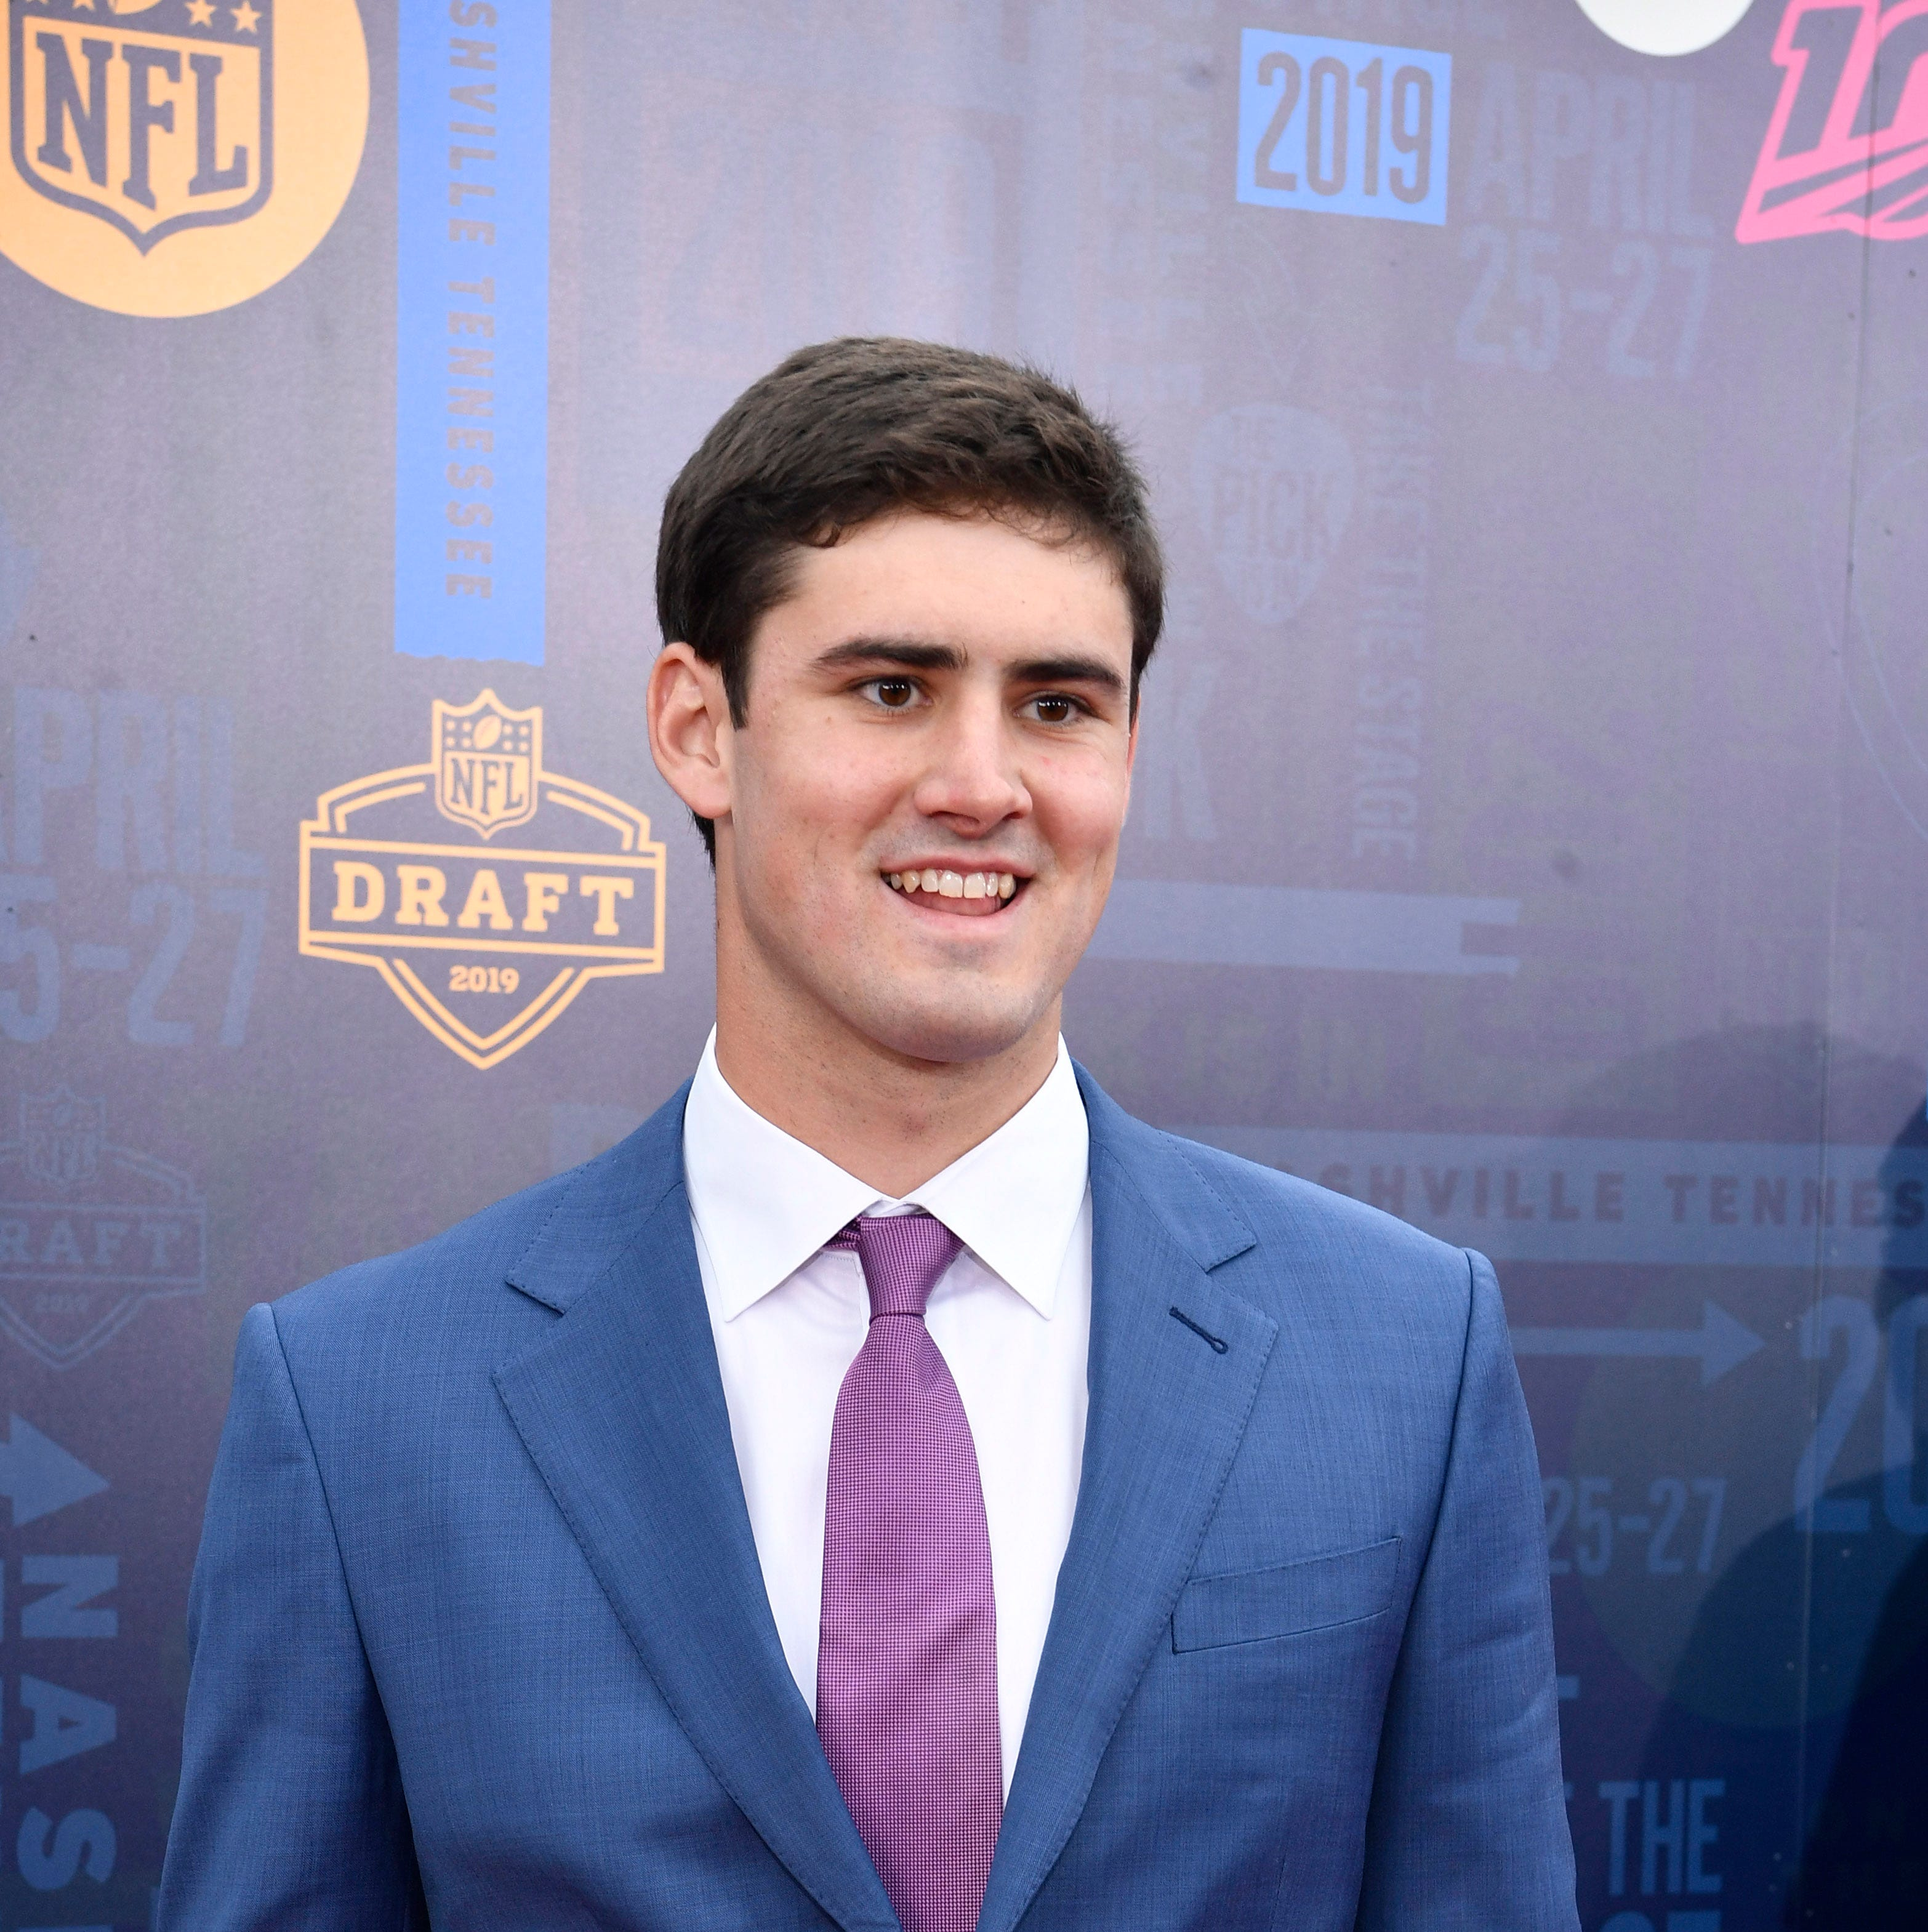 New York Giants draft picks 2019: Round-by-round selections